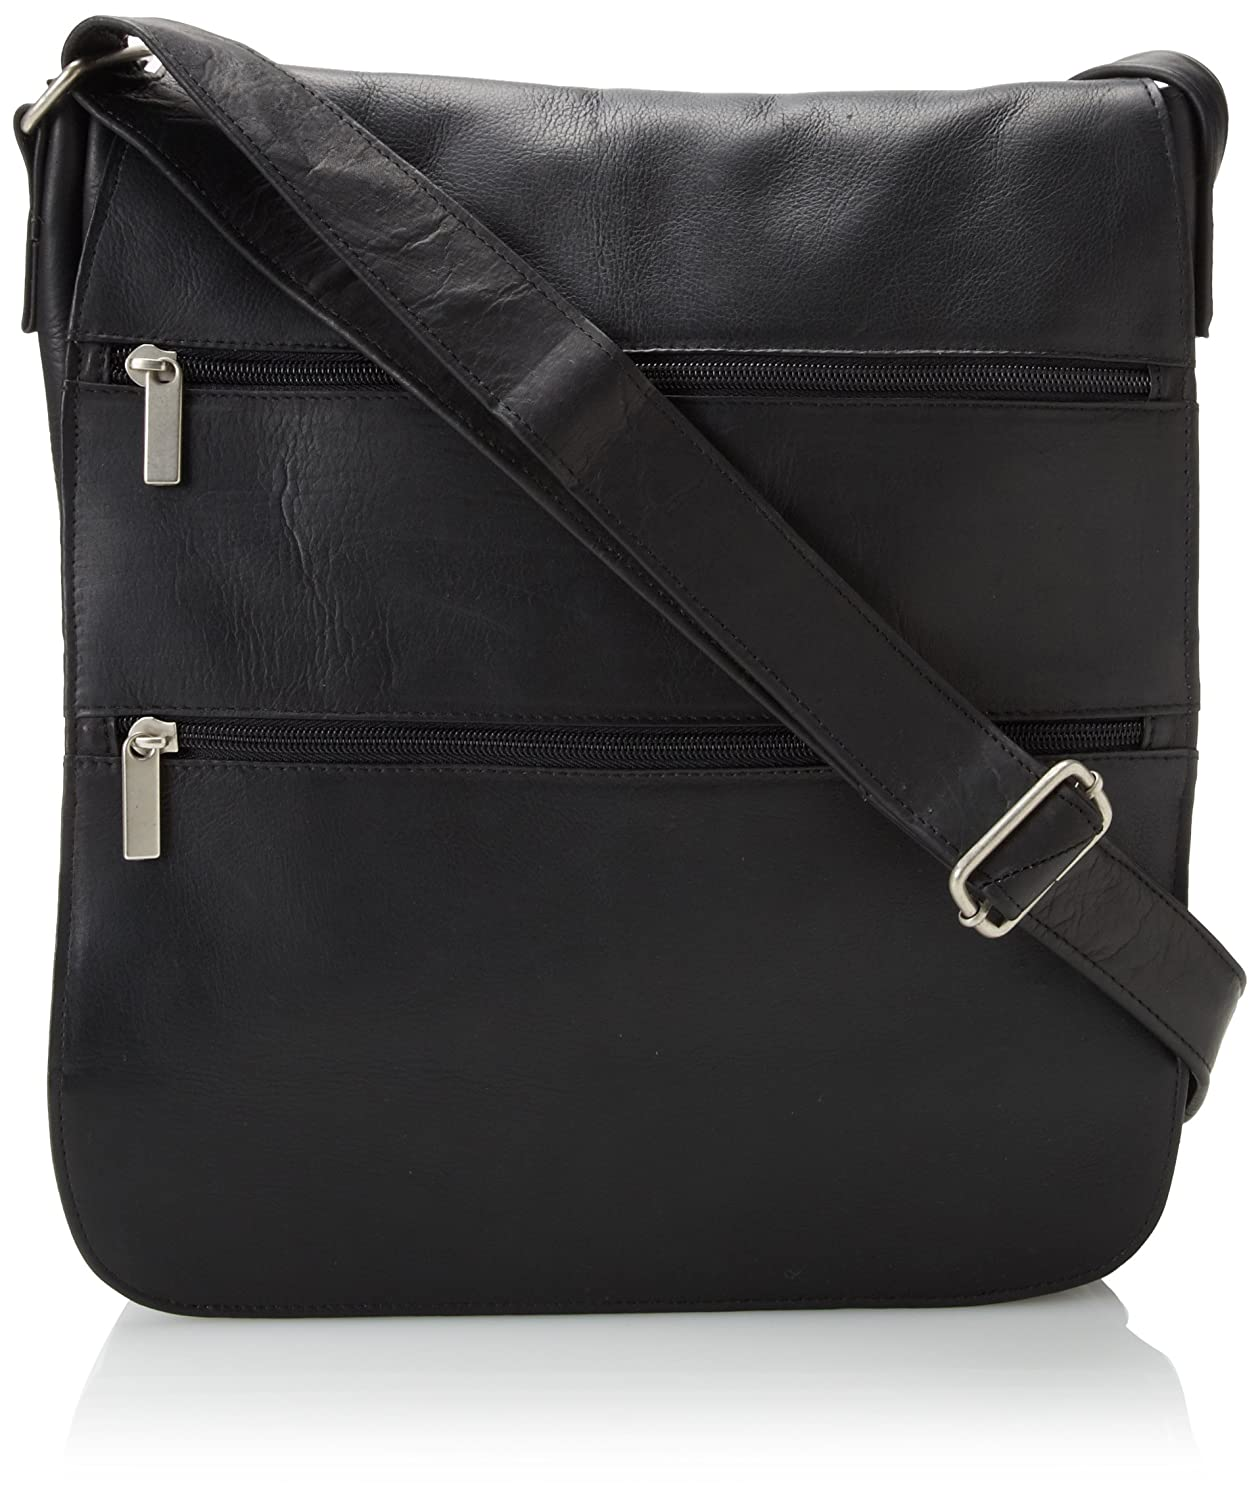 David King Co. Laptop Messenger Bag with 2 Zip Pockets Black One Size